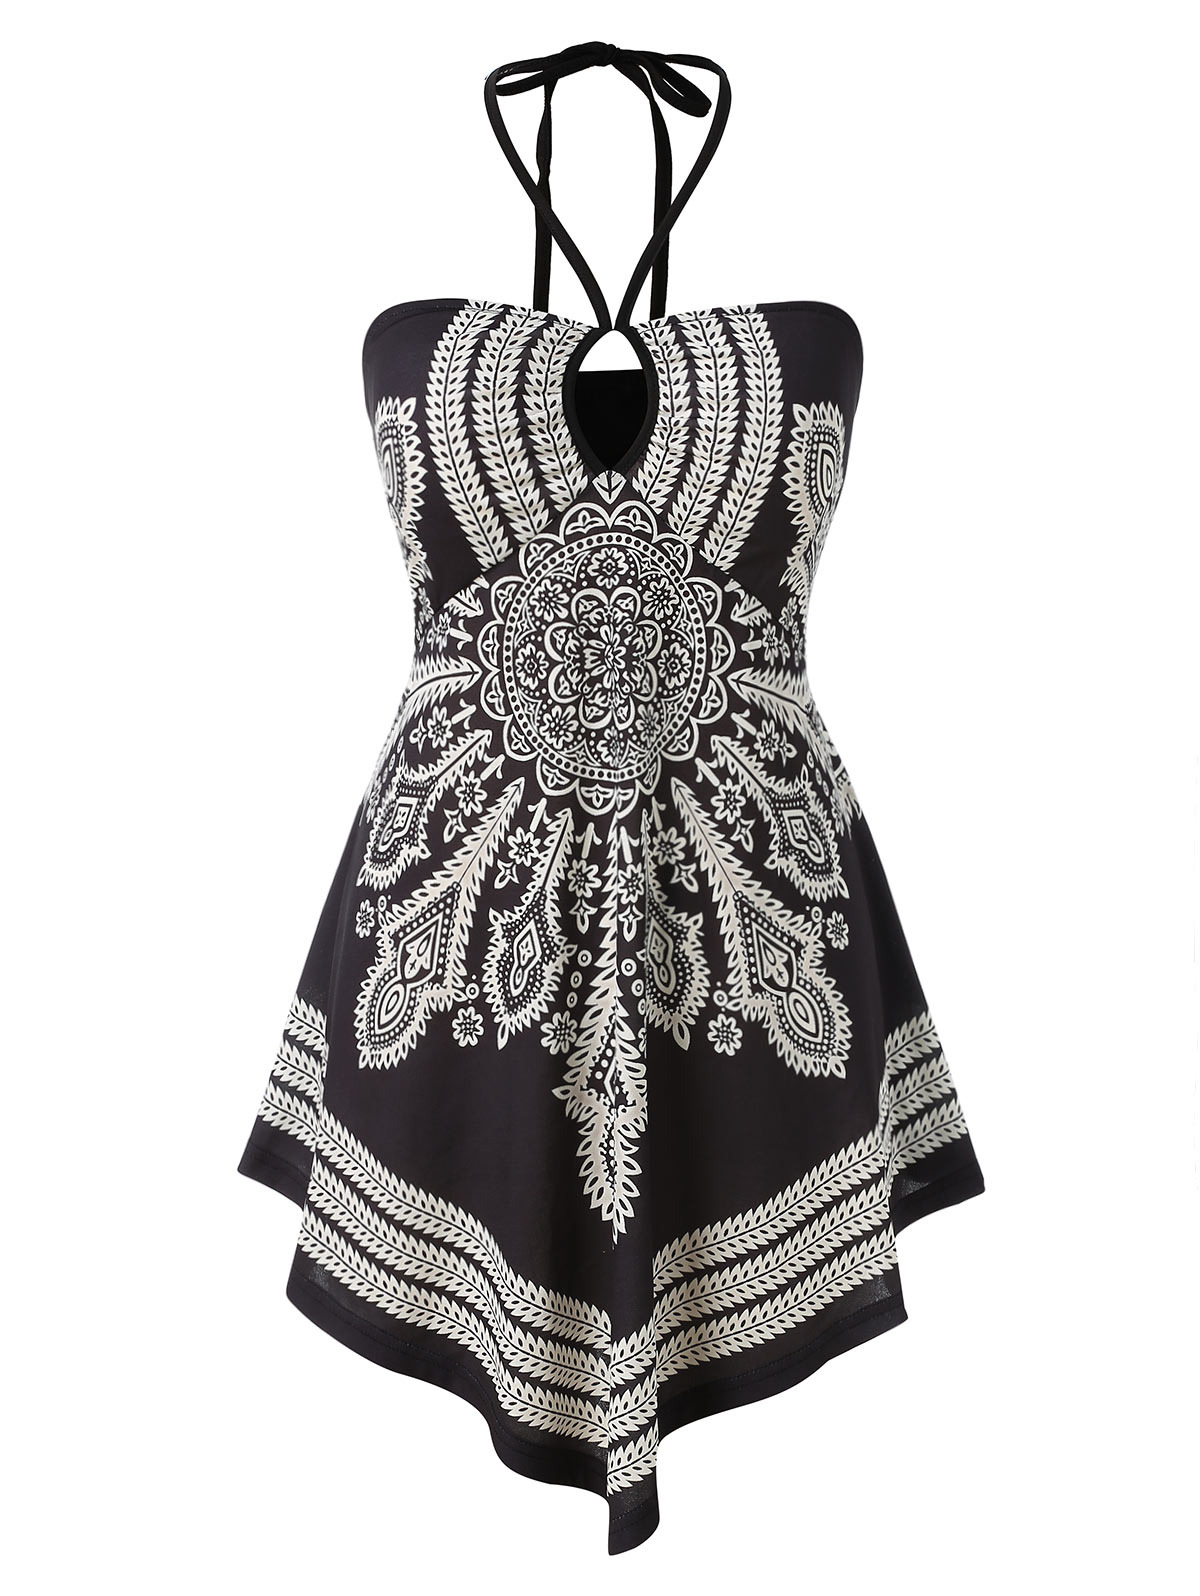 17a9f81e923 Wipalo Plus Size Open Back Printed Camis Sleeveless Halter Neck Vintage  Boho Camis Aesthetic Gothic Tops